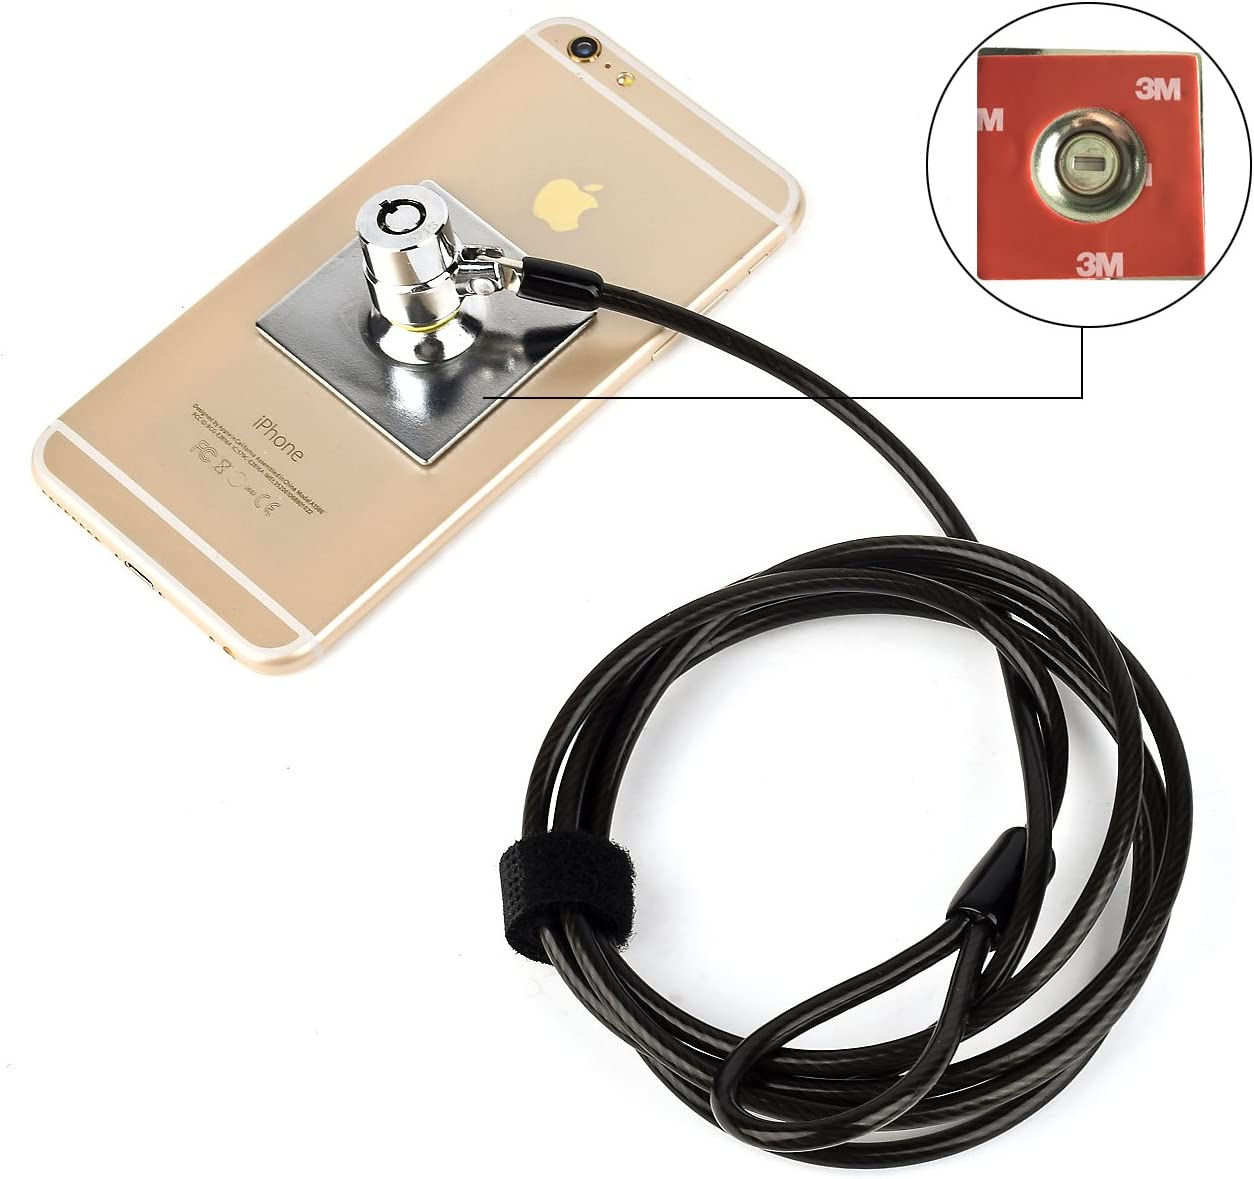 Laptop Lock Notebook Lock Computer Lock Security Cable Lock Keyed Cable Lock for Laptops Desktop Notebook /& Other Device Security Universal Anti-Theft Wire Retractable Lock,